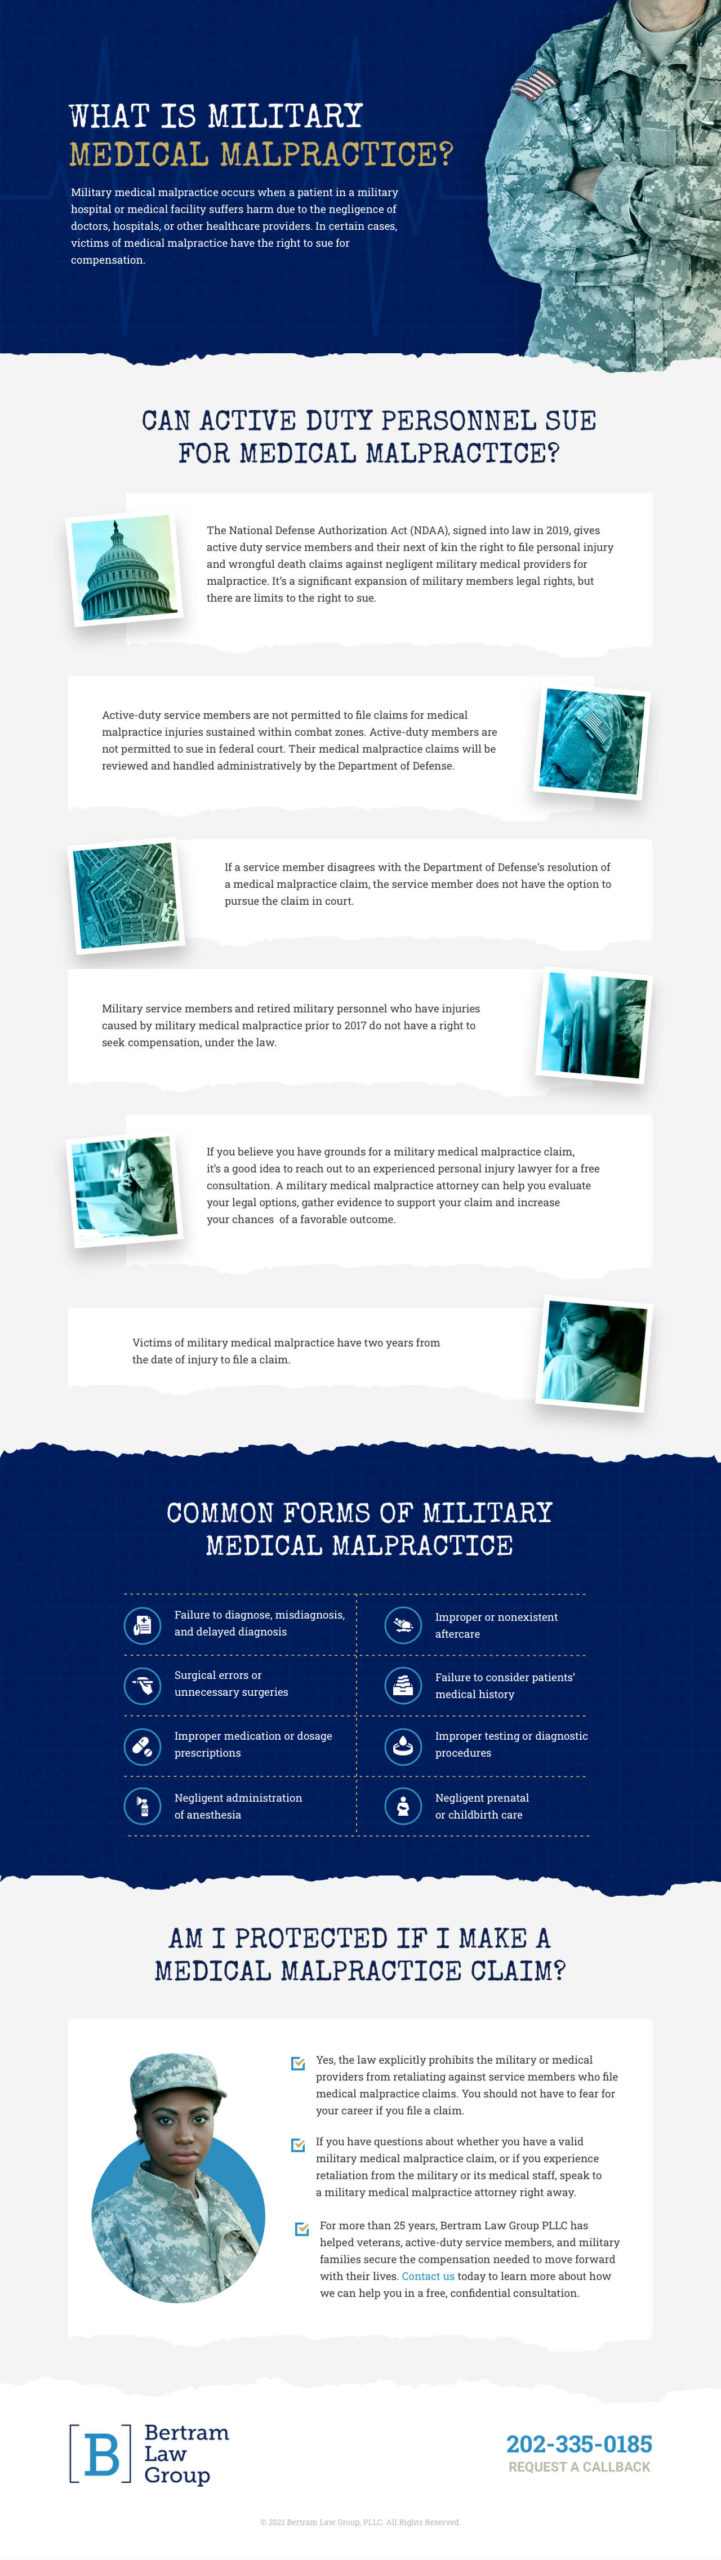 Military Medical Malpractice Infographic – Bertram Law Group PLL